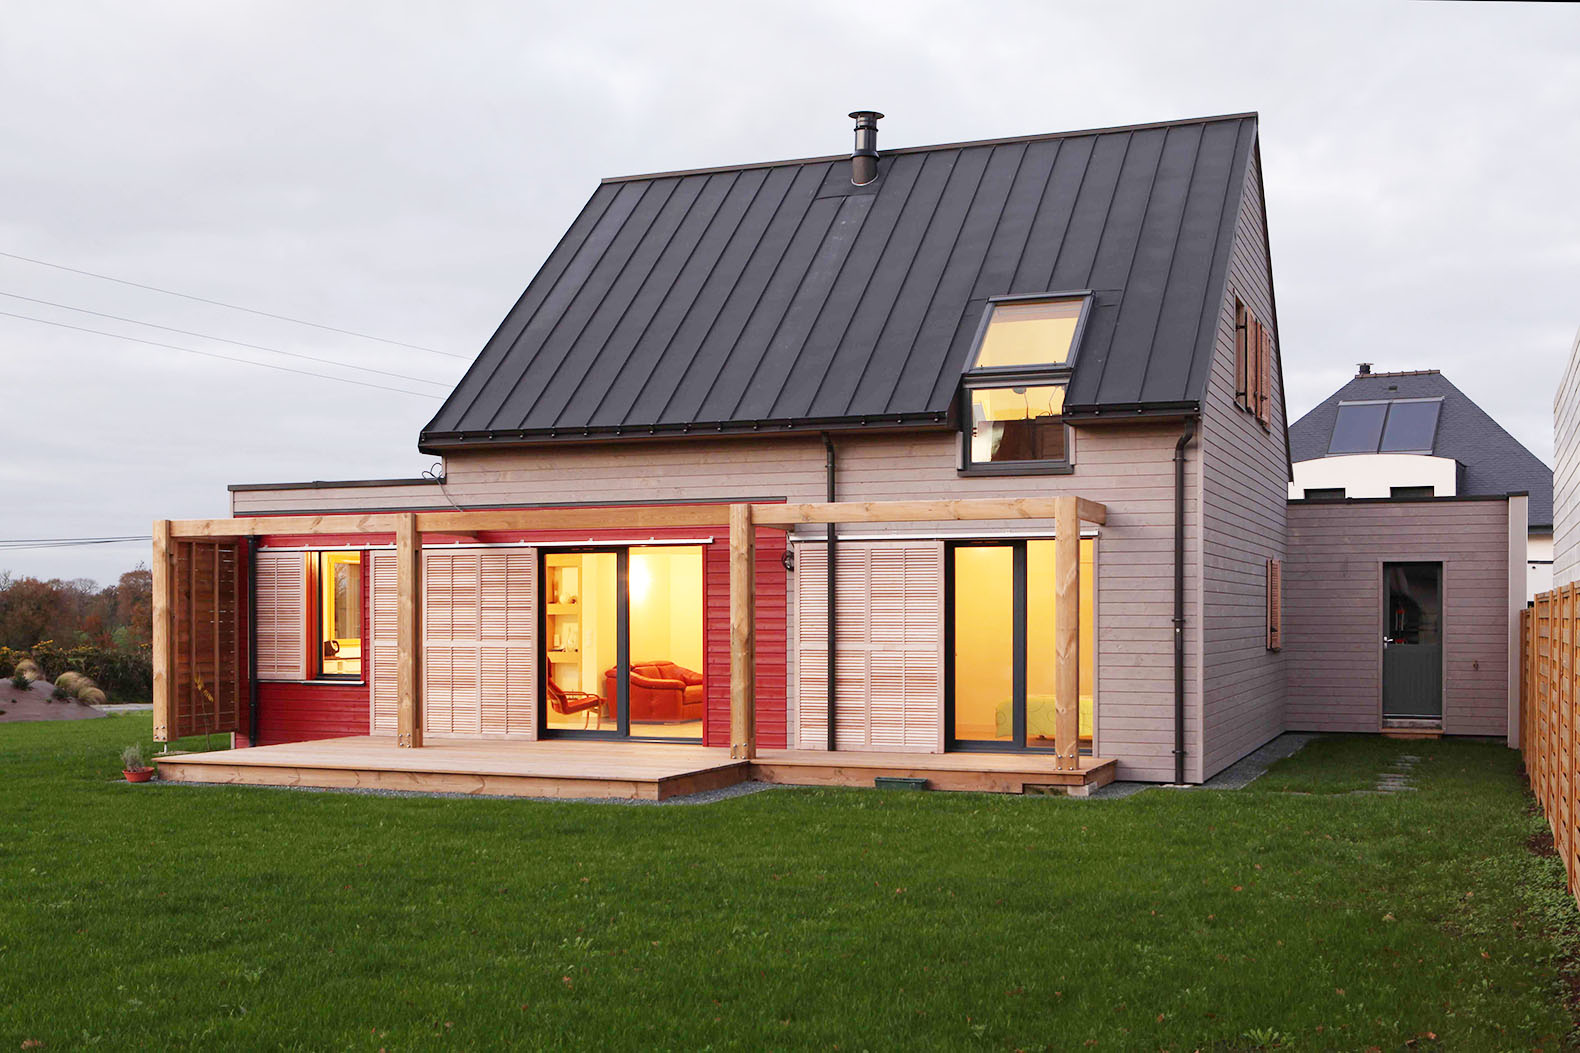 House Exterior Design Ideas likewise 1 Story Bungalow House Designs additionally 3 Storey House Design On Slope also High Pitched Roof House Plans likewise House Plan Single Storey Bungalow. on modern single story house plans flat roof